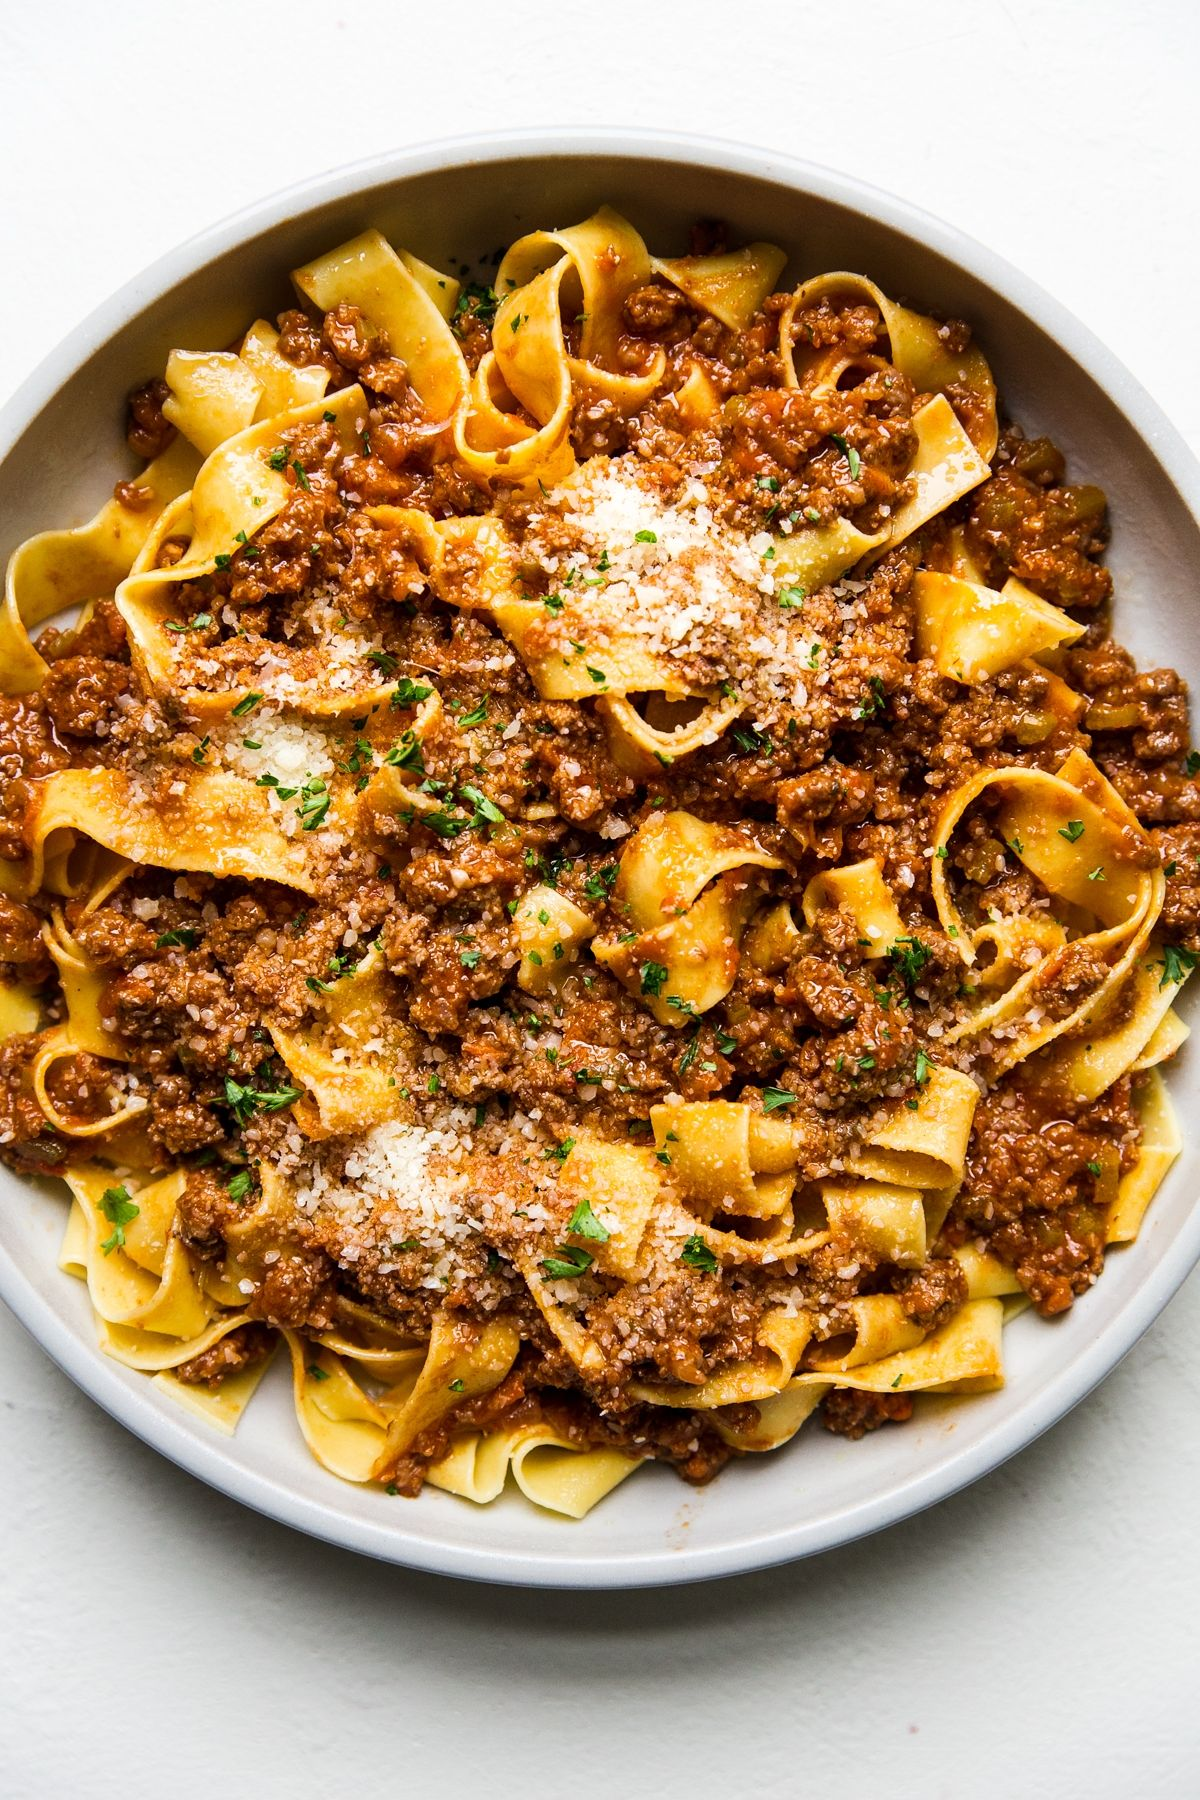 Easy Bolognese by The Modern Proper || Hearty and comforting, this meaty, easy bolognese sauce recipe takes less time to make than it does to disappear into hungry tummies.